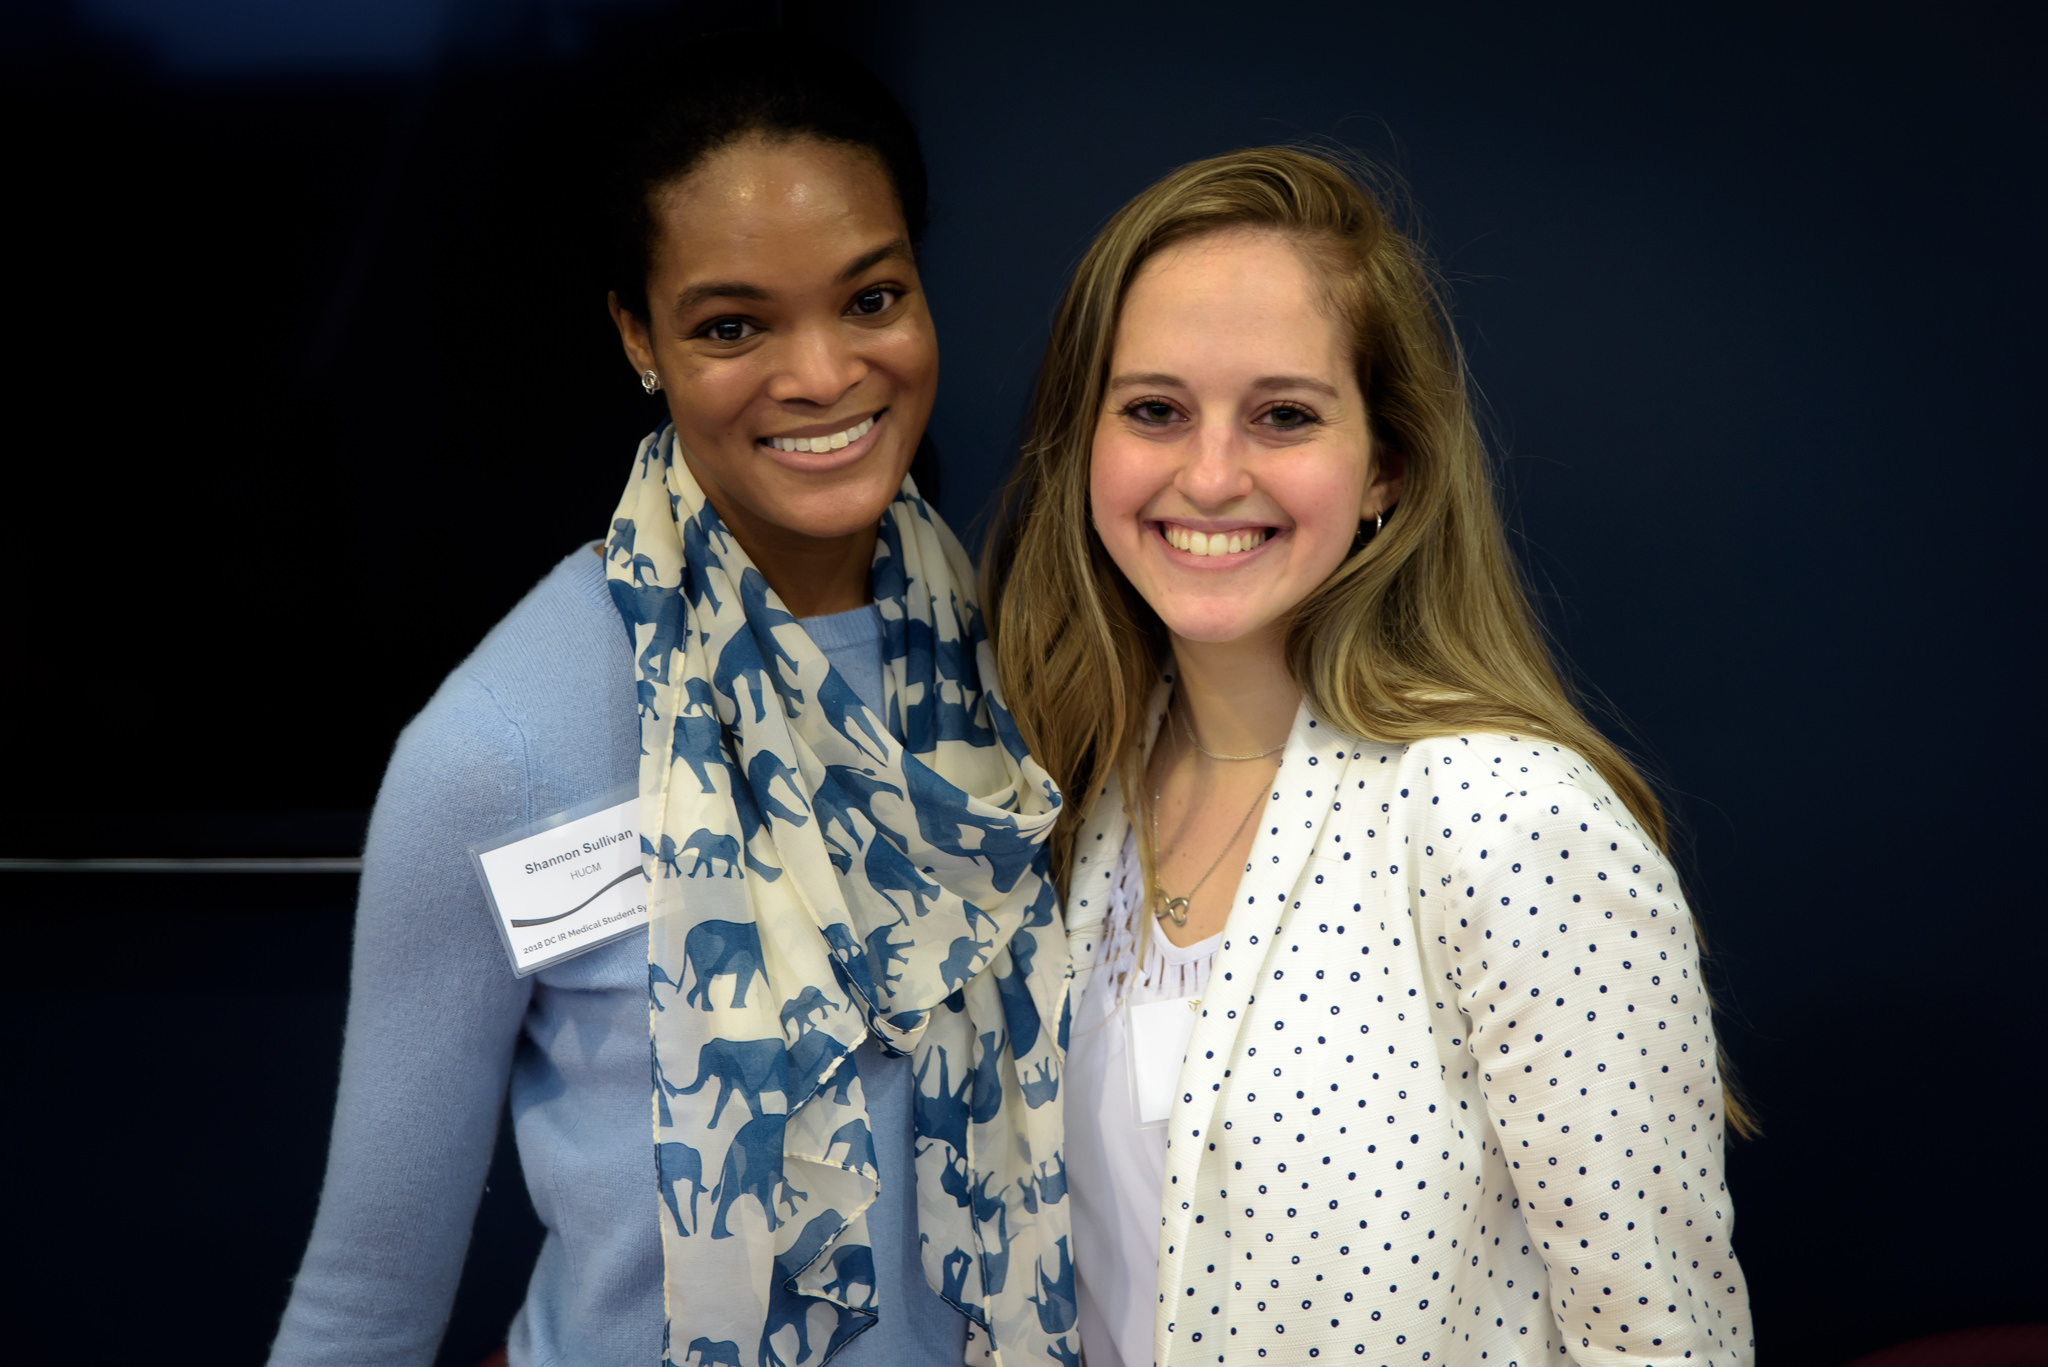 Symposium Planning Committee Members: Shannon Sullivan (left, HUCM) and Michal Ad (right, Georgetown)